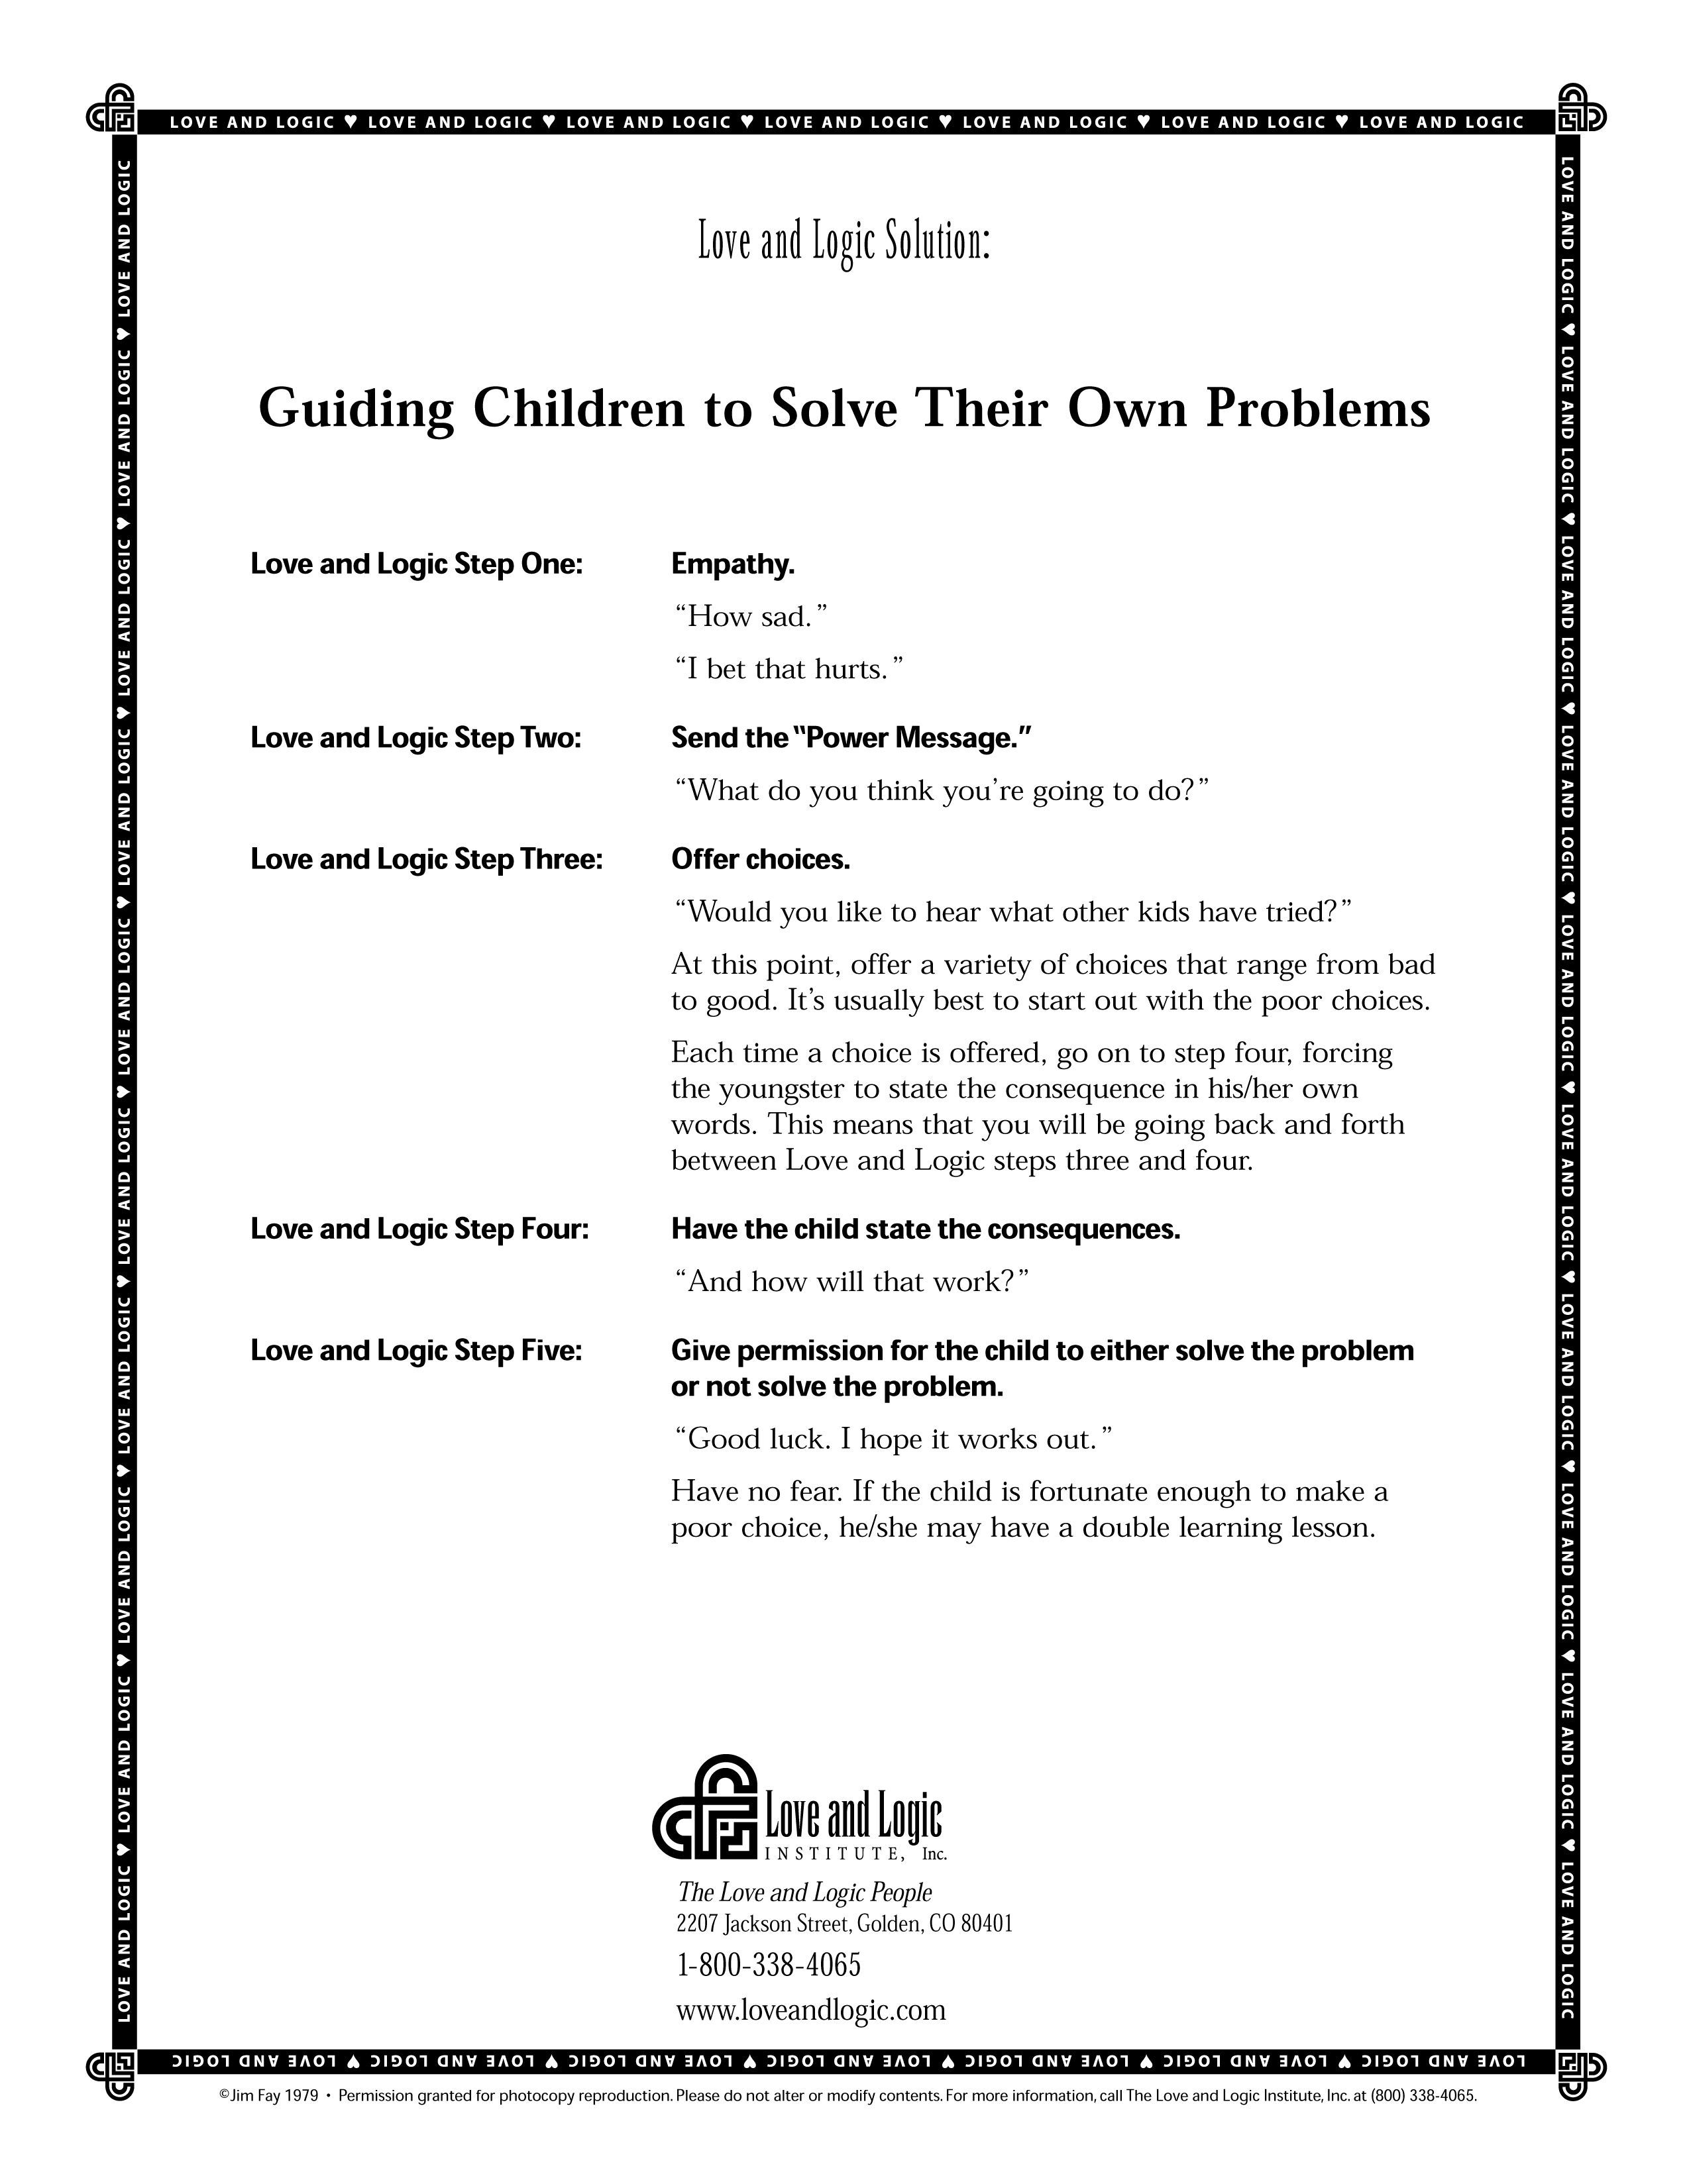 How To Guide Your Children To Solve Their Own Problems